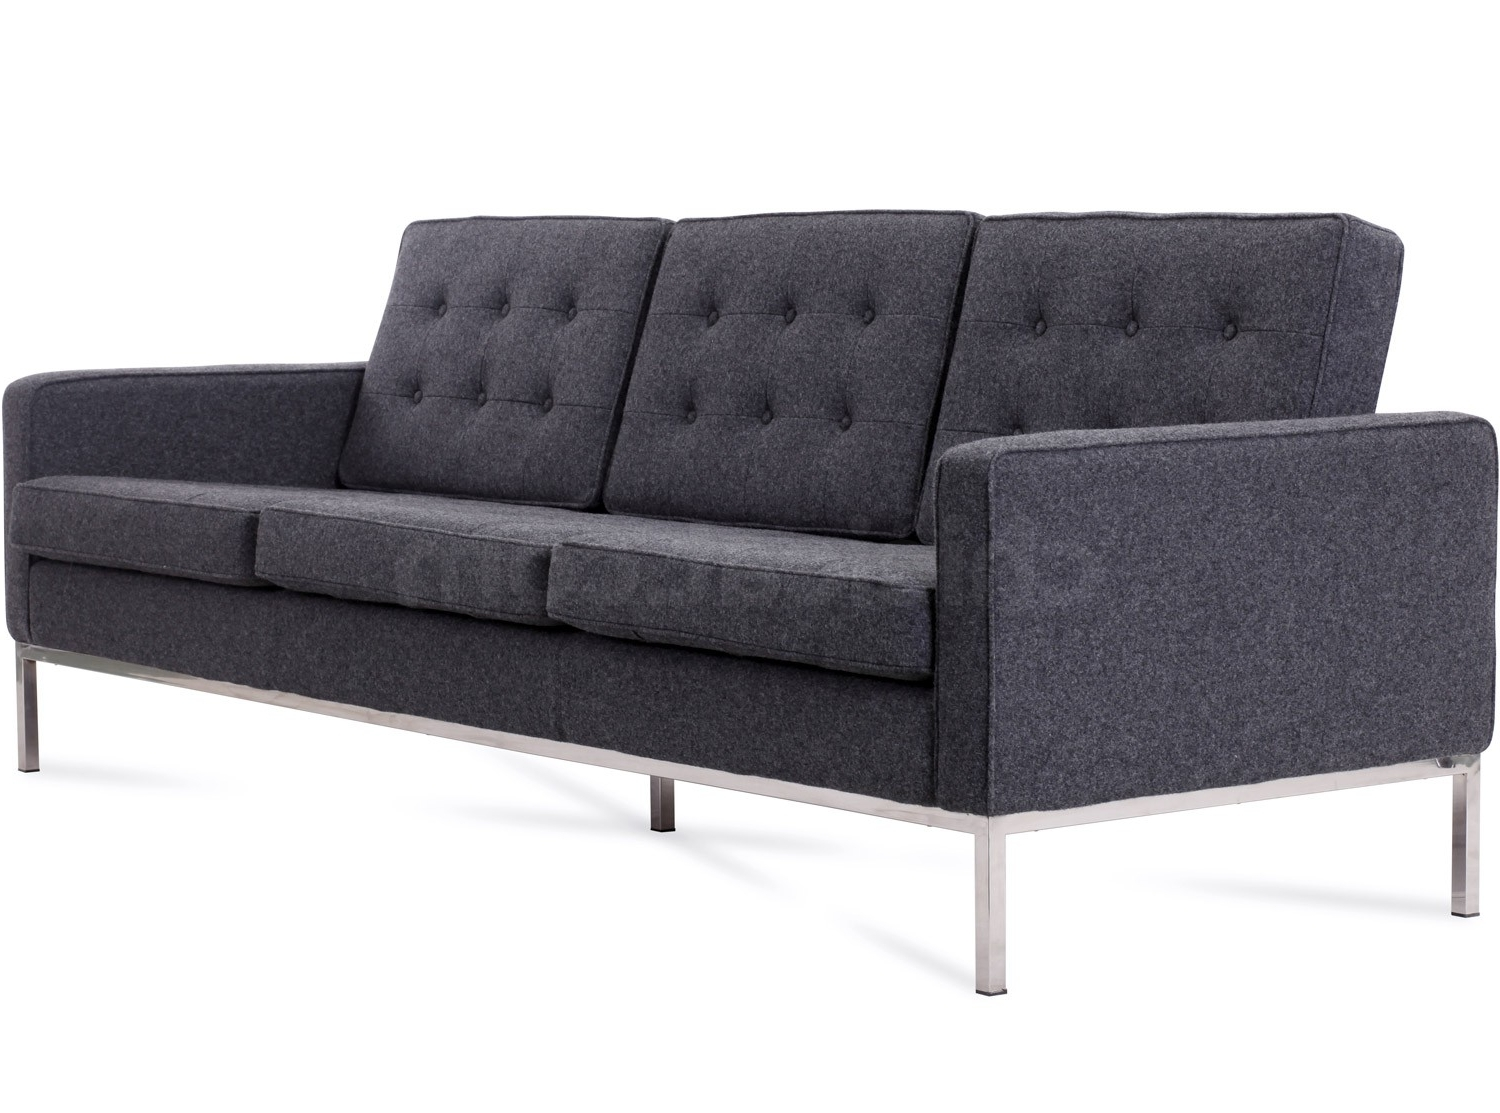 Florence Large Sofas Intended For Popular Florence Knoll Sofa 3 Seater Wool (Platinum Replica) (View 13 of 15)